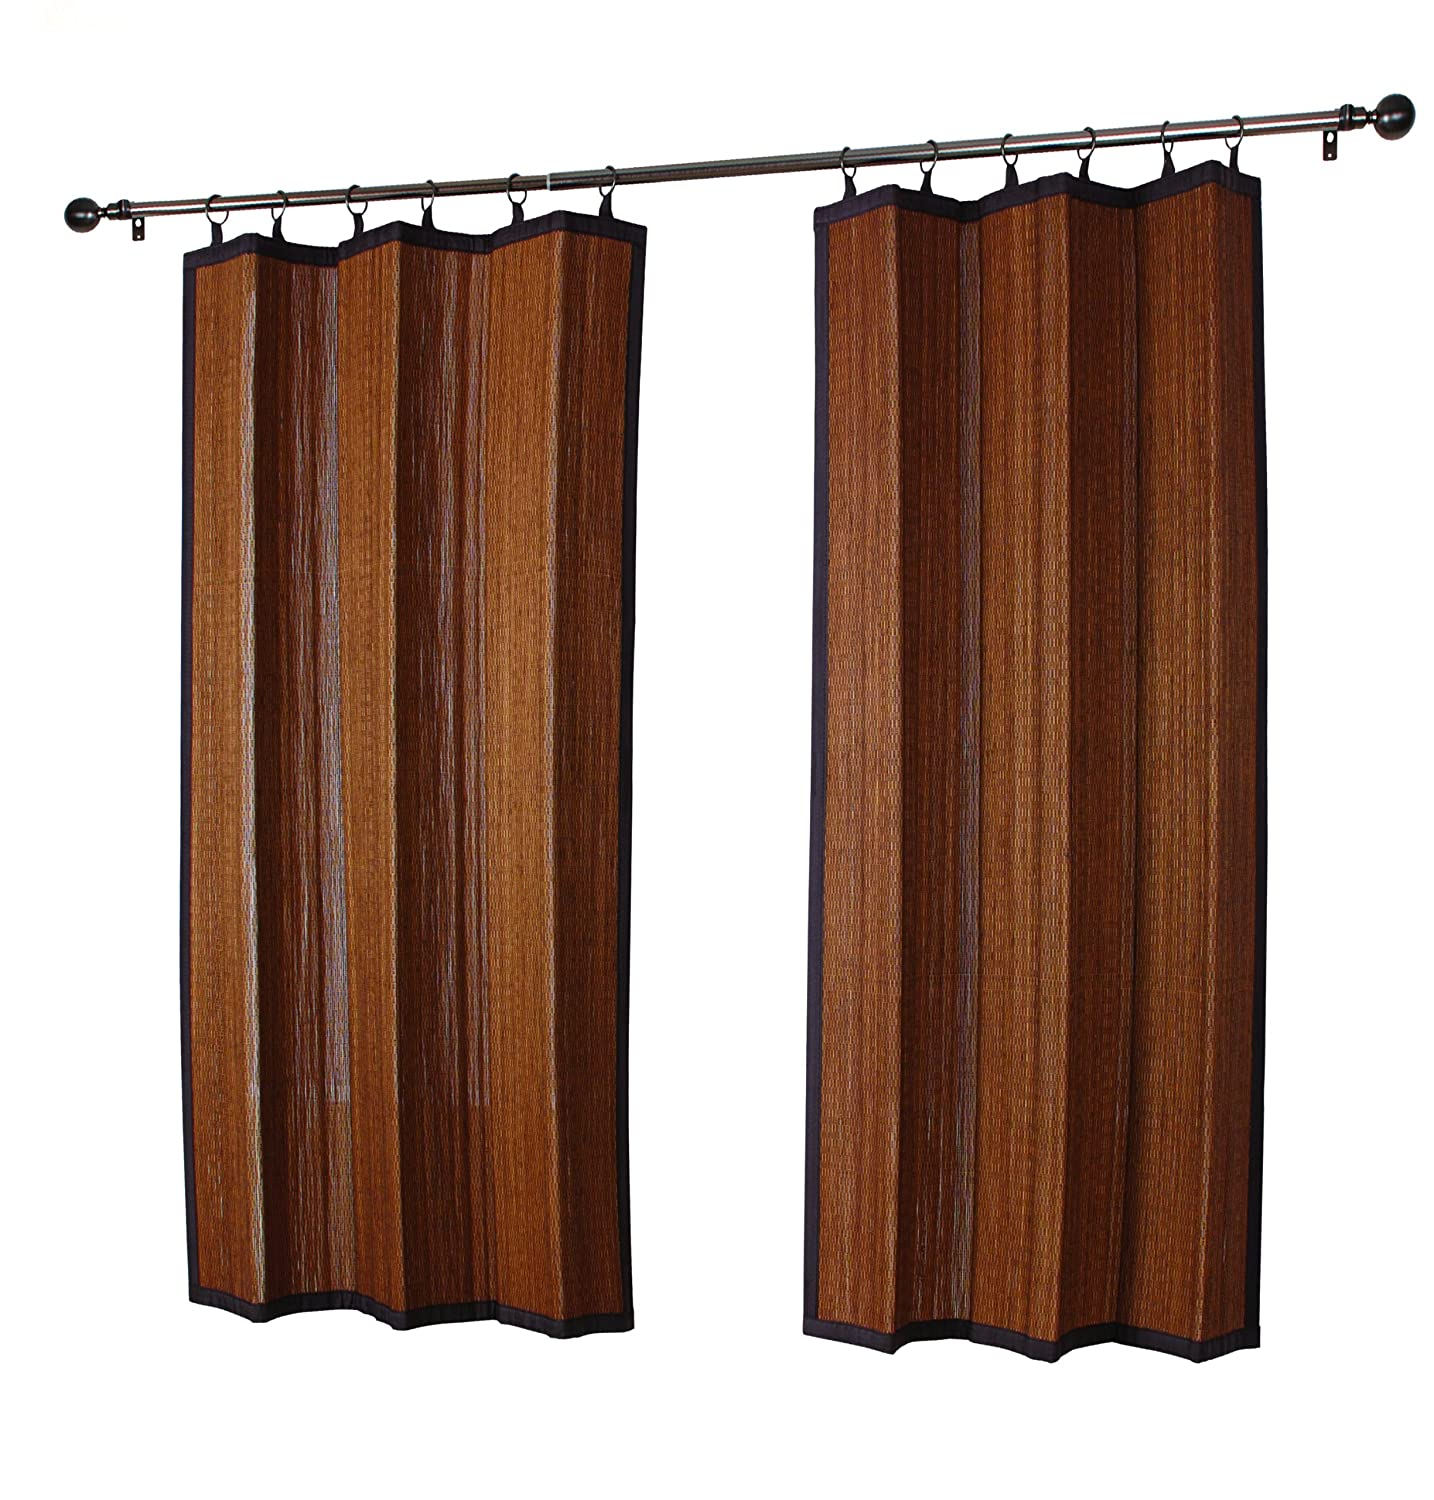 Outdoor bamboo curtains - Amazon Com Versailles In And Outdoor Patented Ring Top Bamboo Panel In Grey Mix Patio Lawn Garden